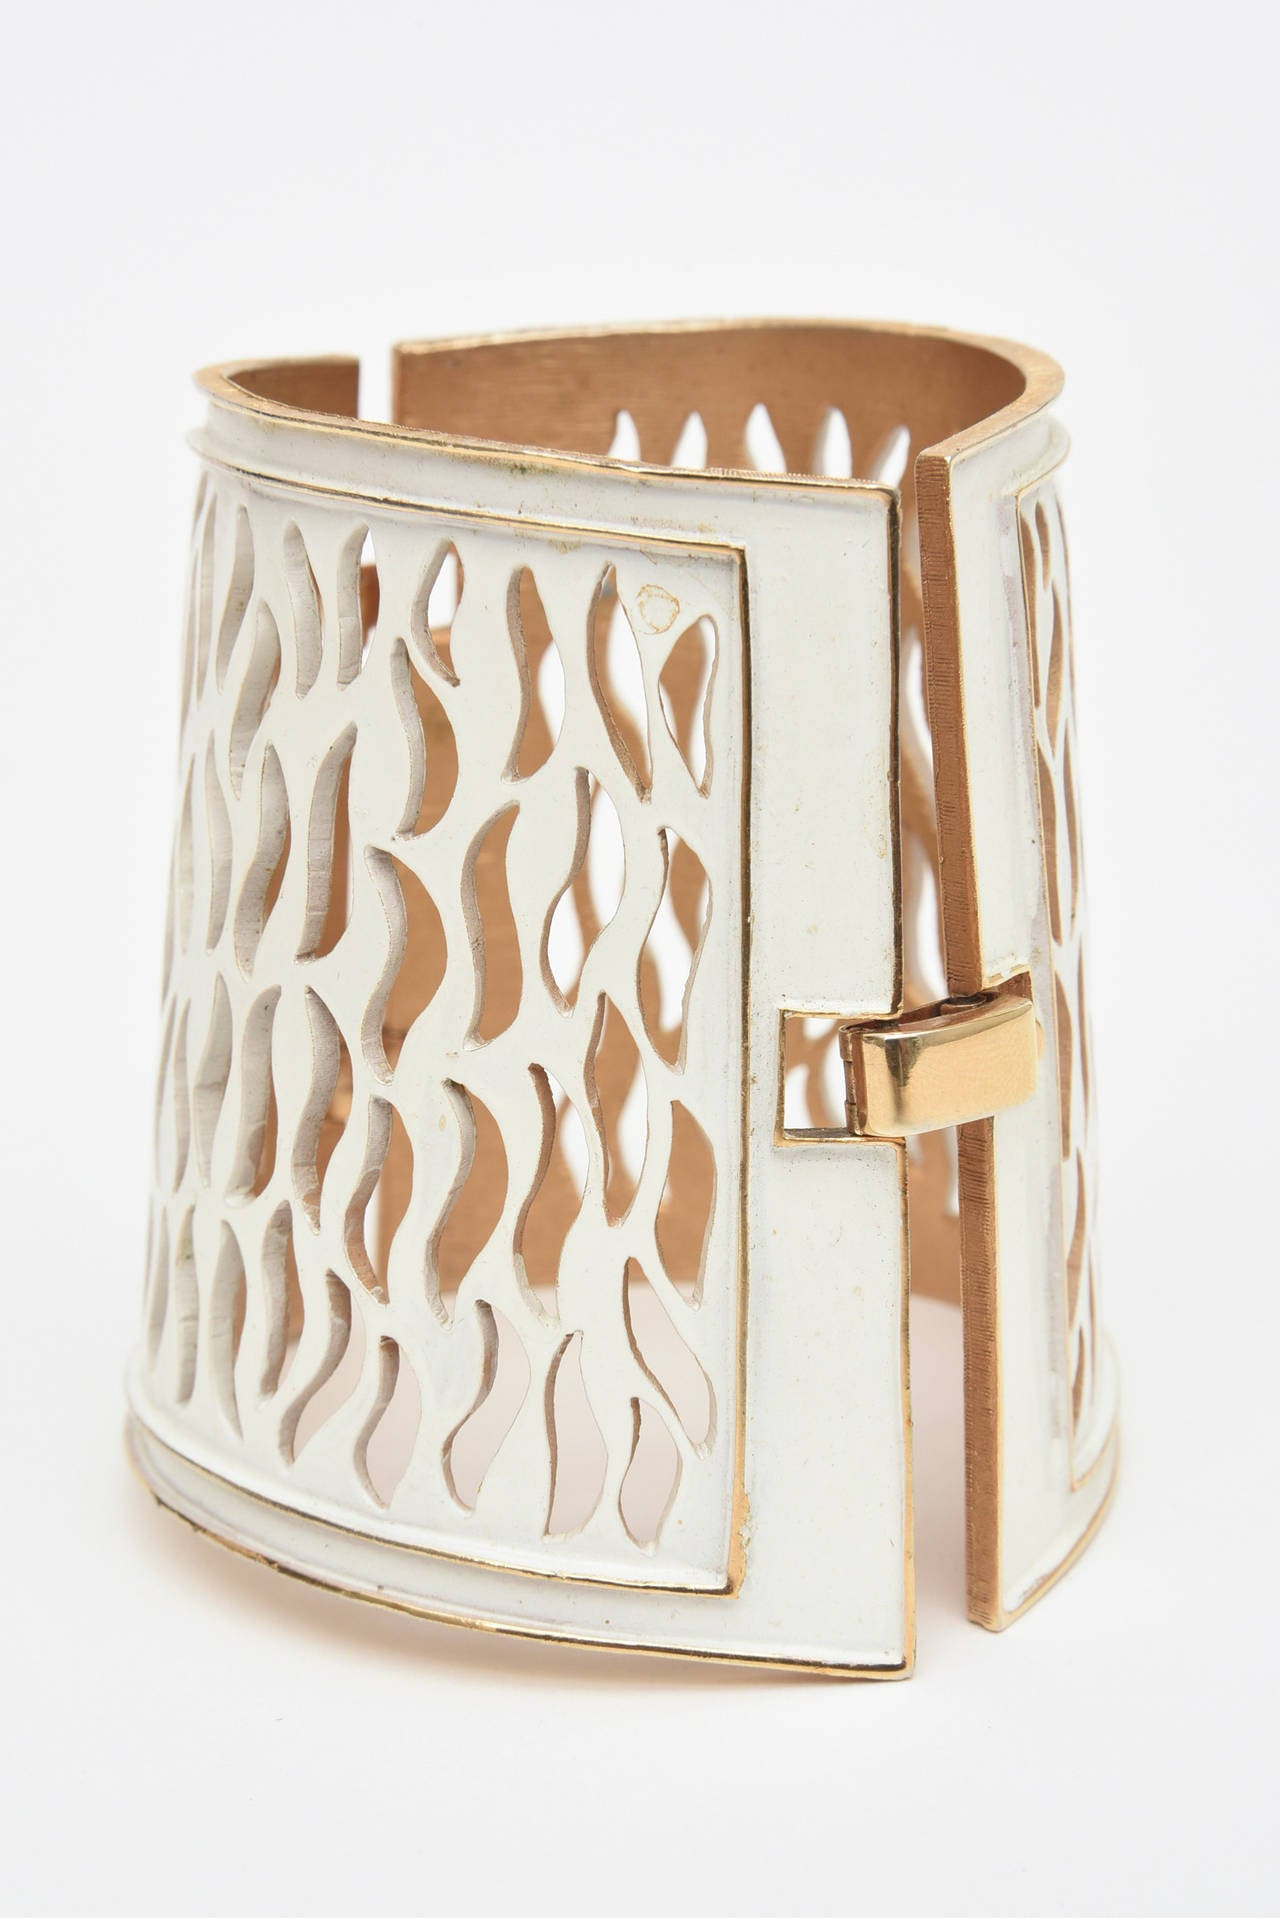 Trifari Enamel and Gold Metal Cutout Wide Sculptural Dramatic Cuff  In Good Condition For Sale In North Miami, FL